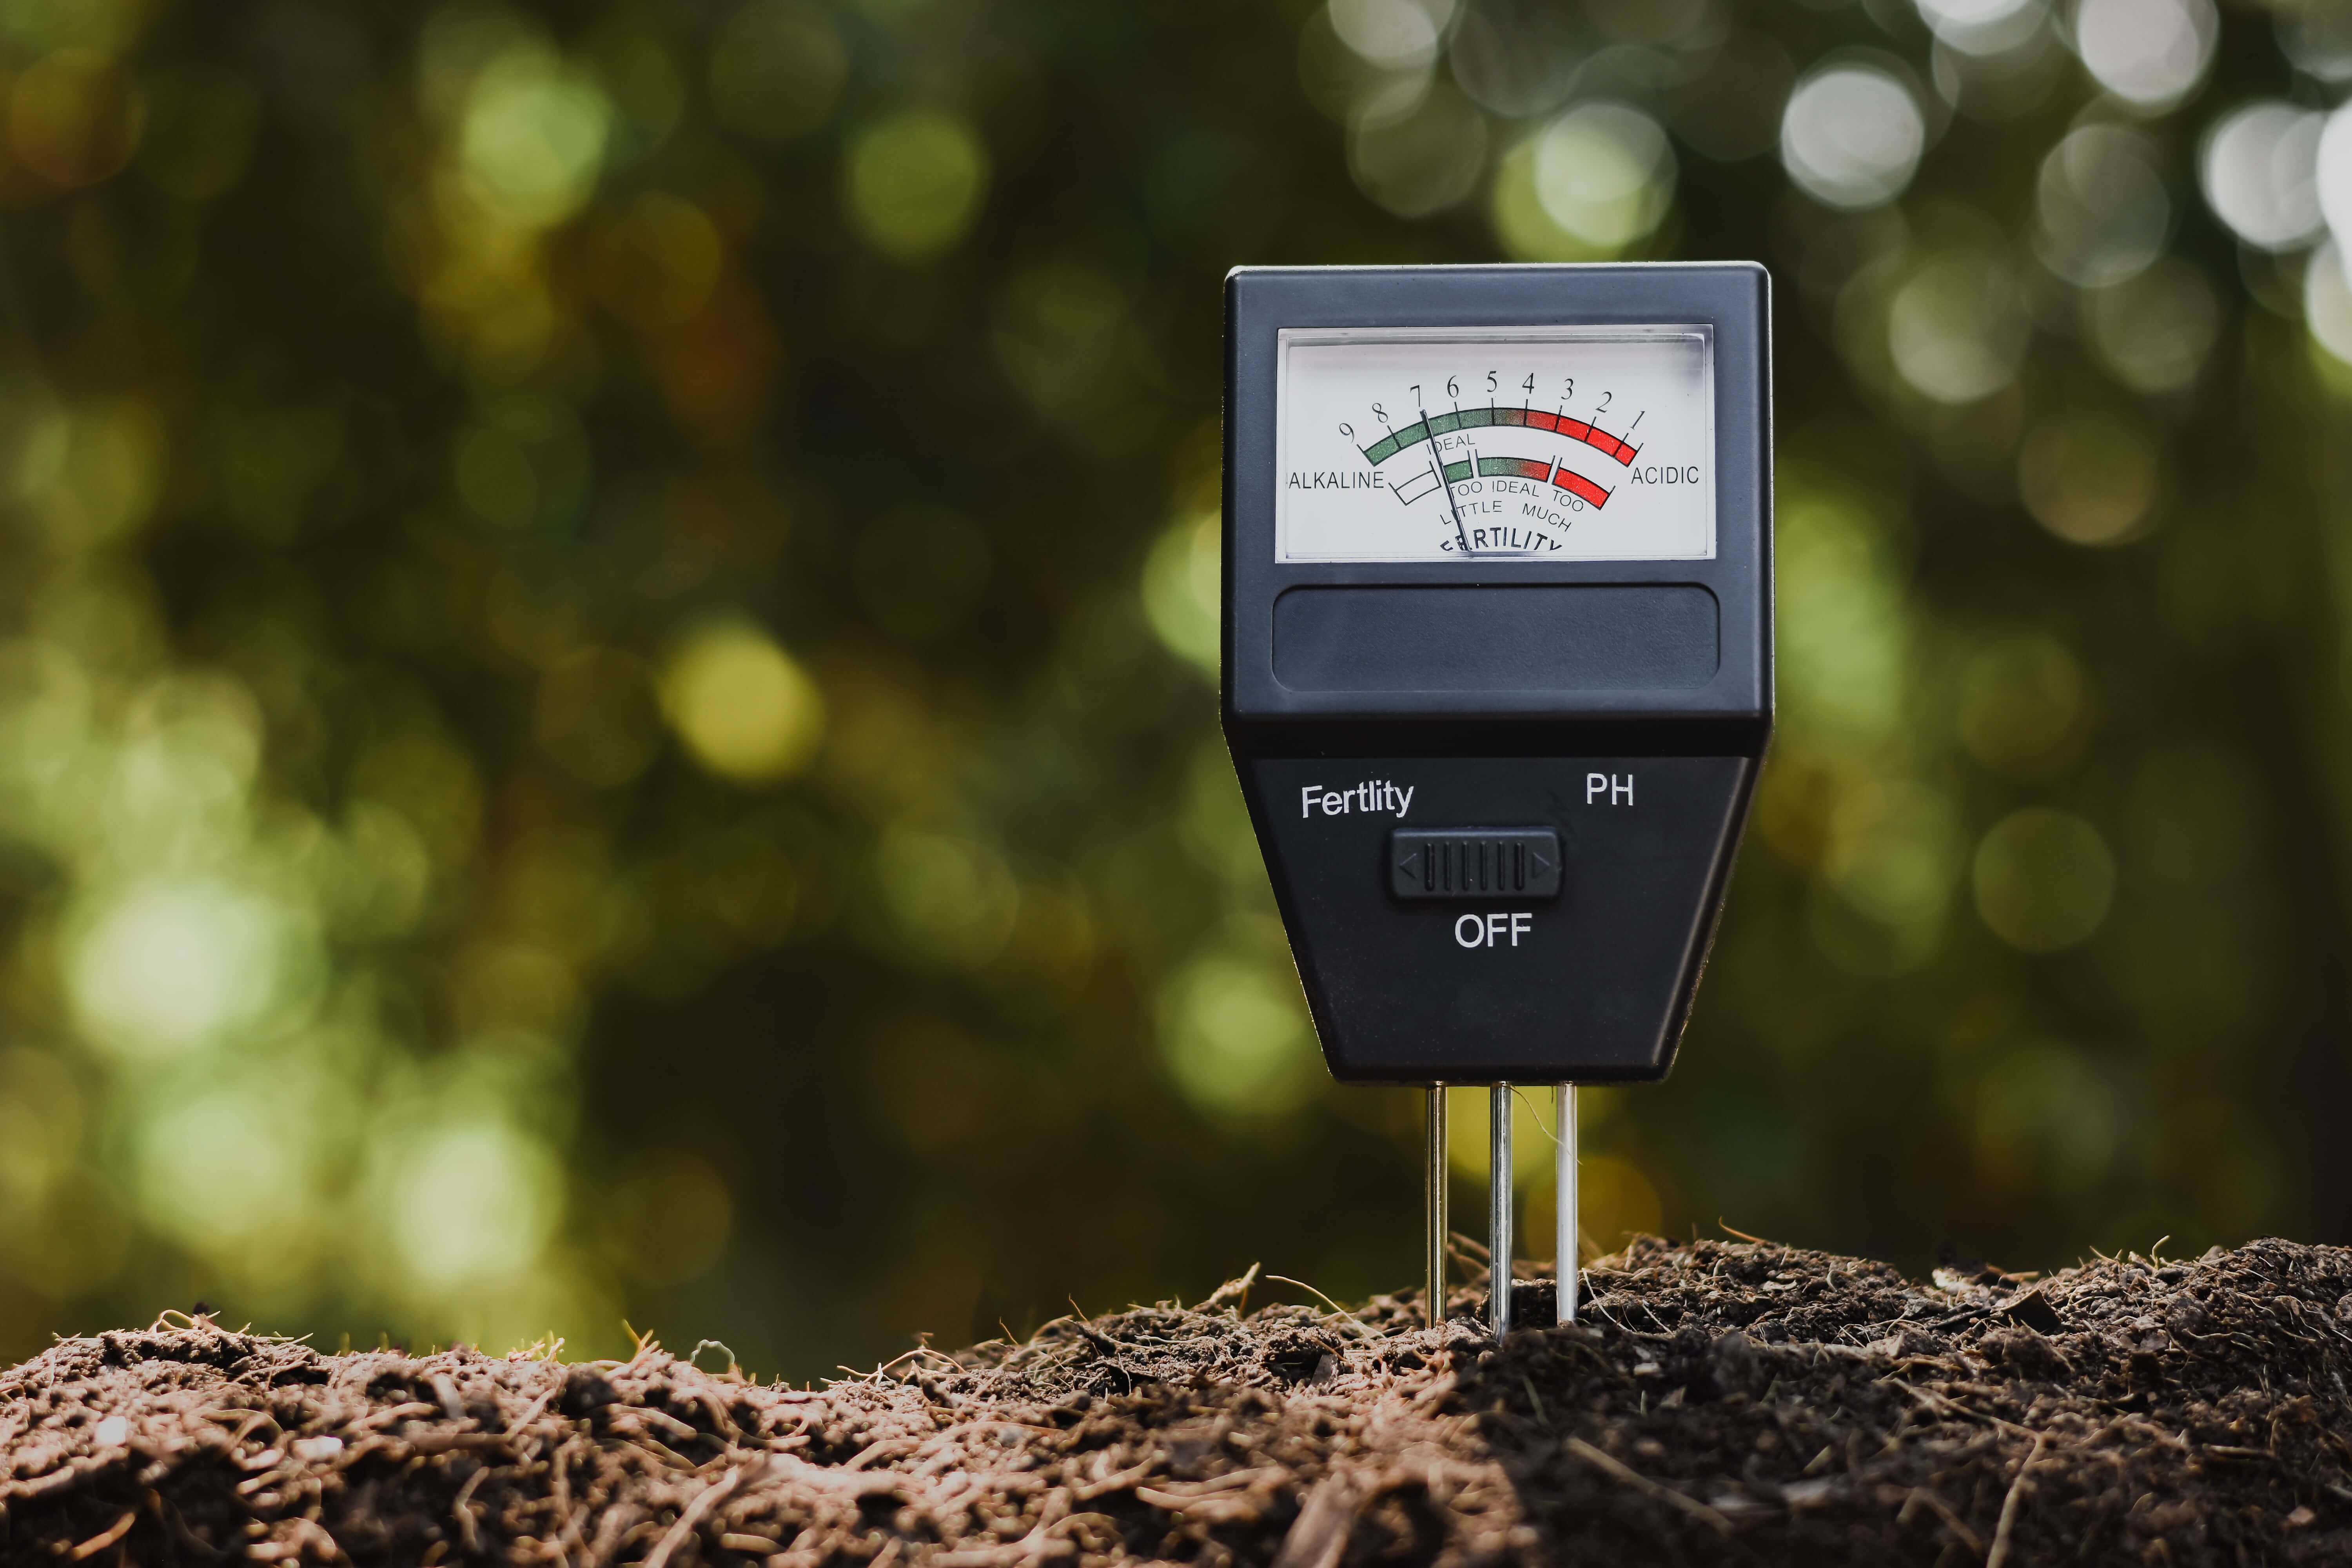 Check Your Soil and pH